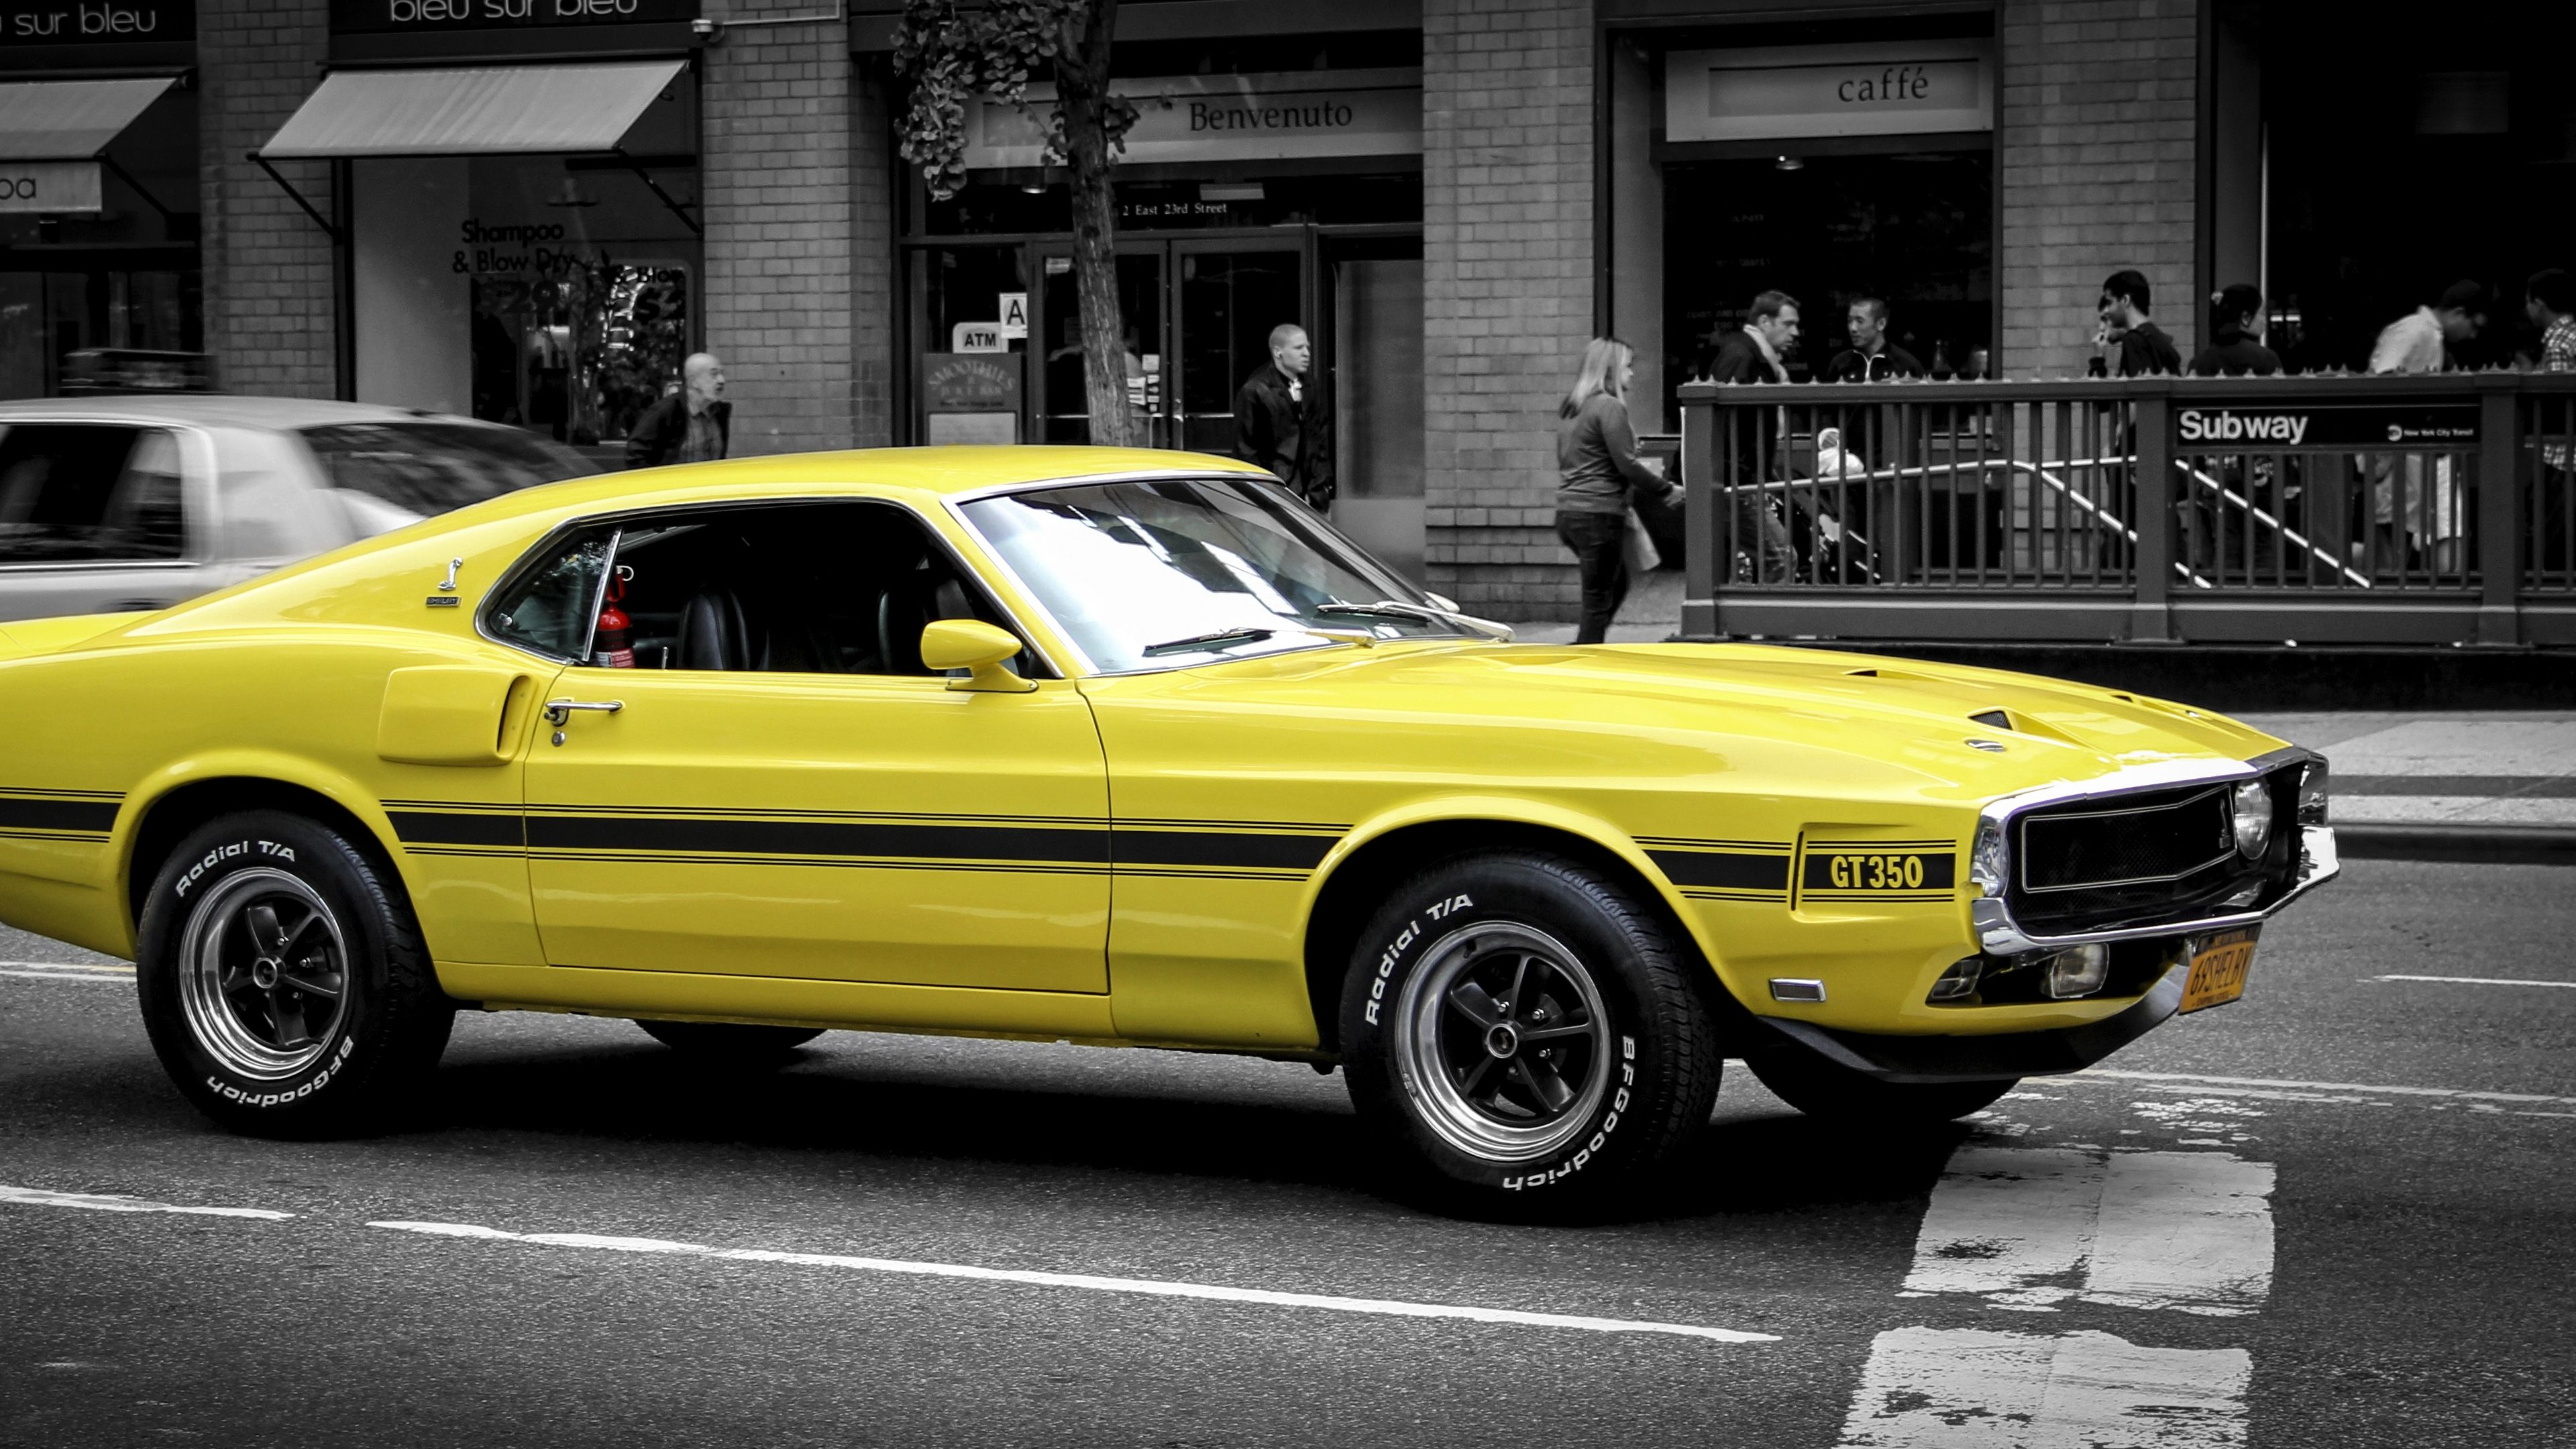 Wallpaper 4k Ford Mustang Gt Muscle Car Yellow Side View 4k Ford Mustang Gt Muscle Car